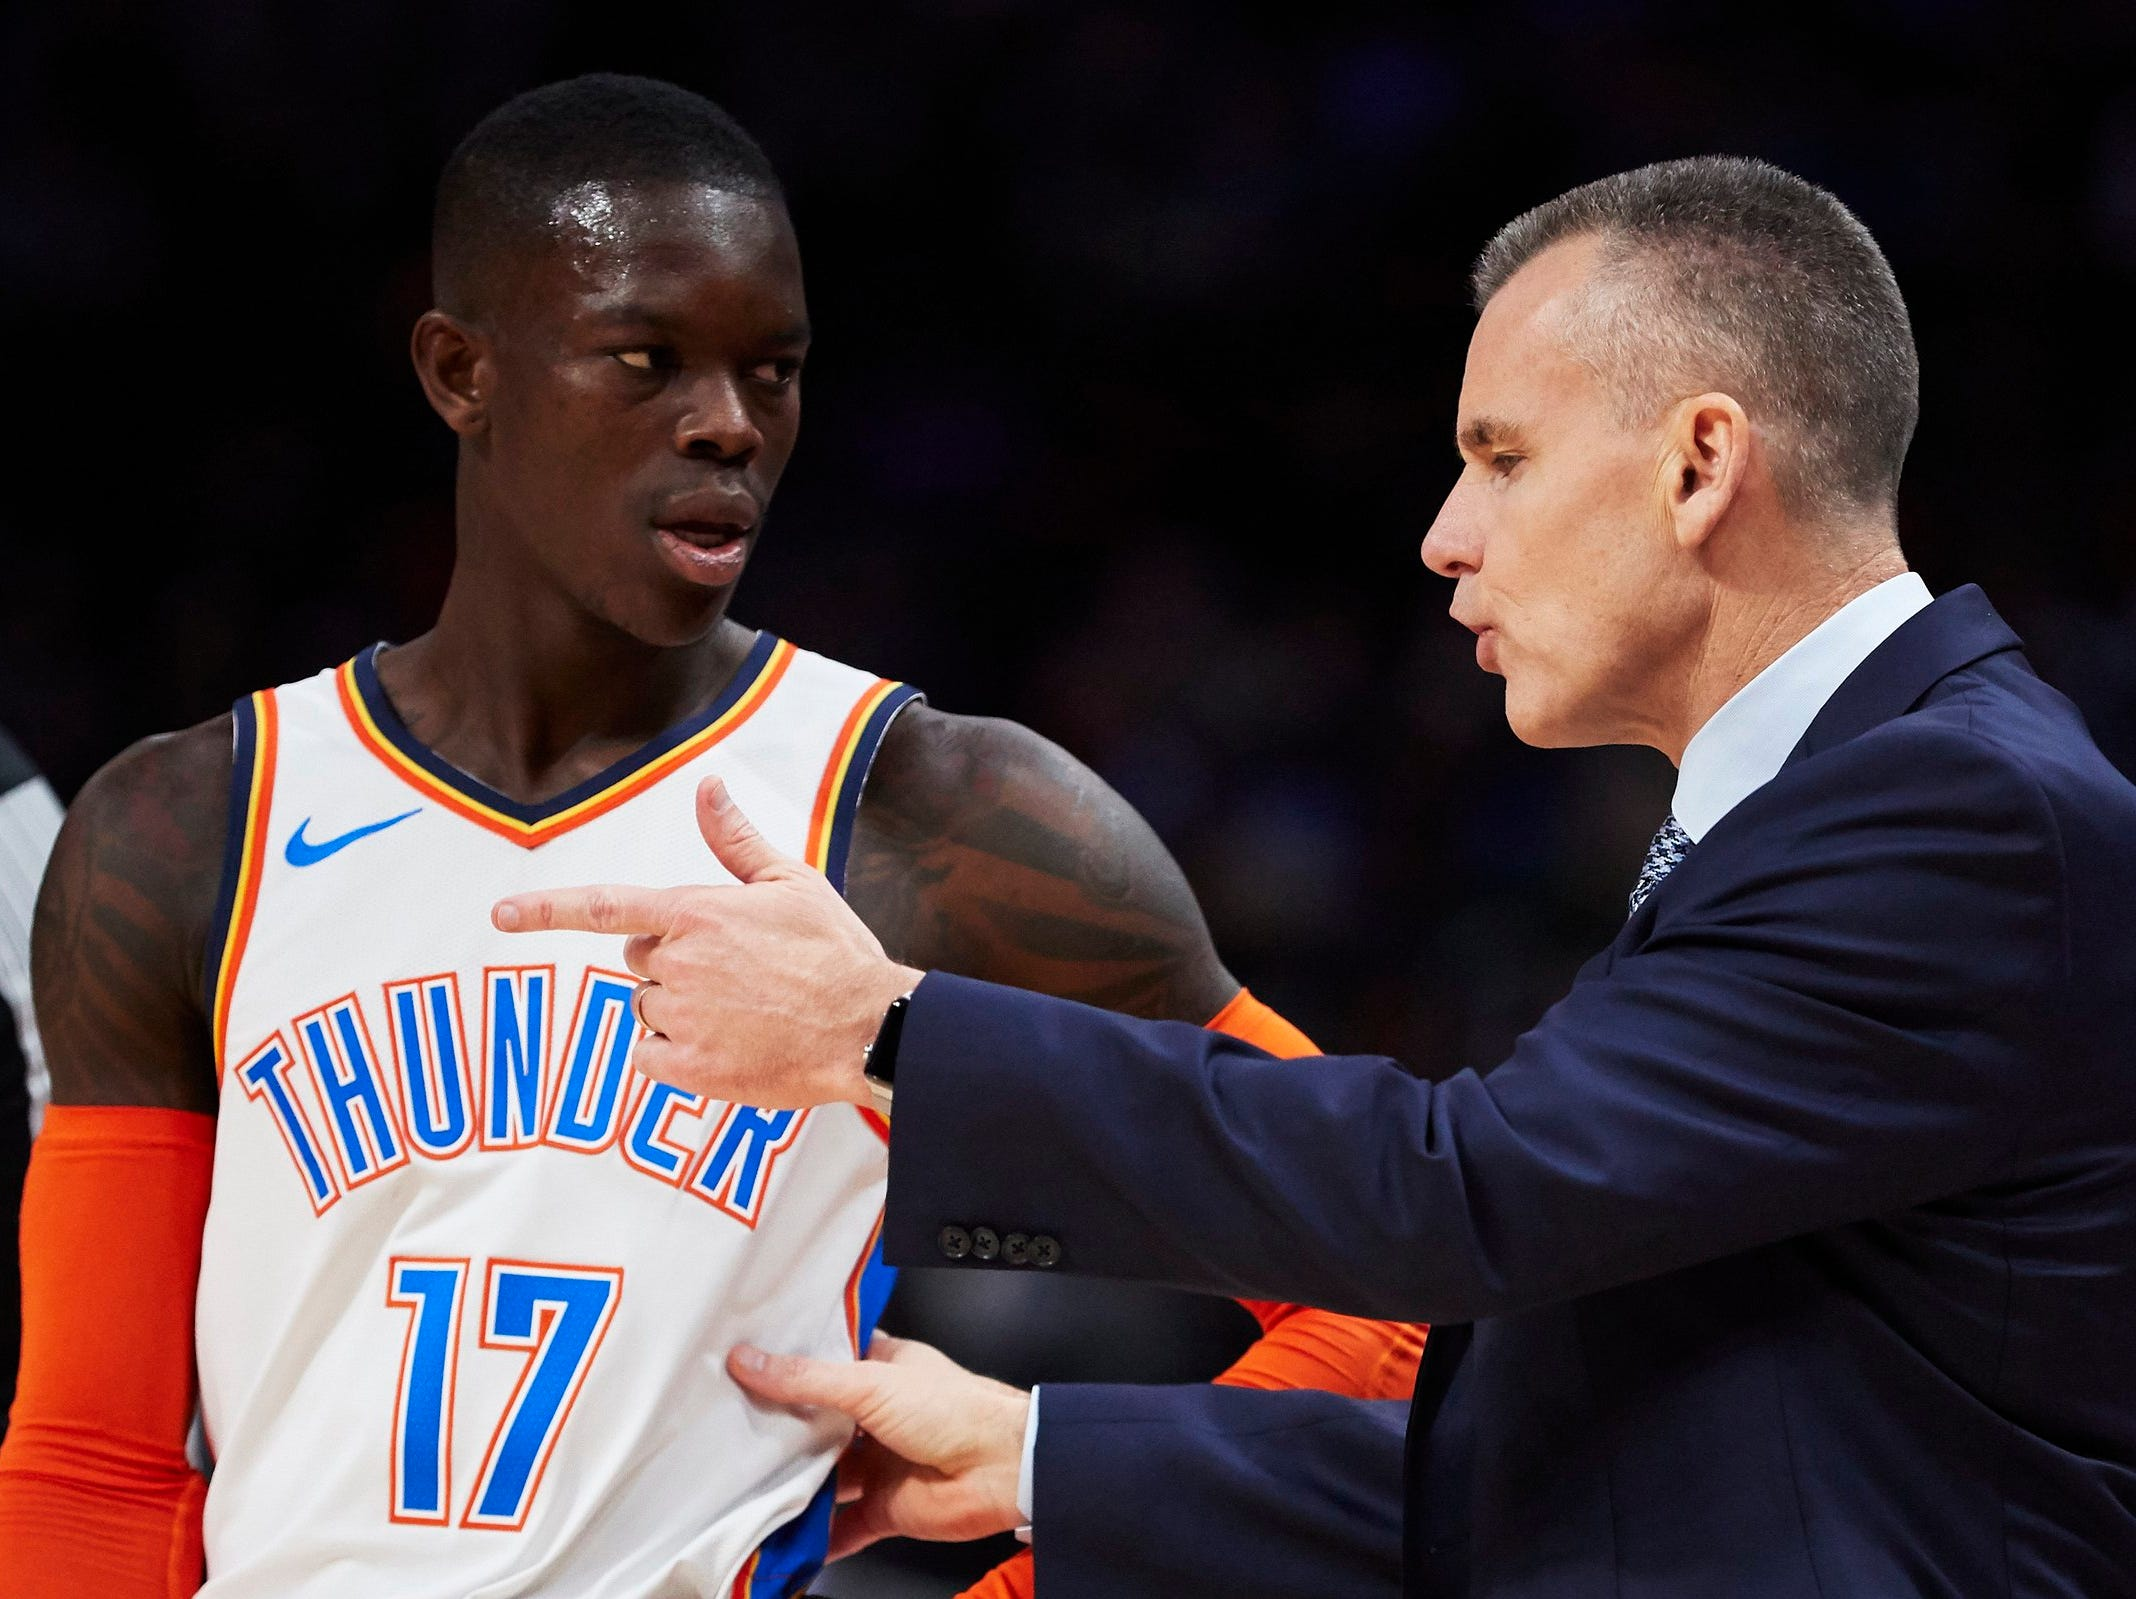 Oklahoma City Thunder head coach Billy Donovan talks to guard Dennis Schroder (17) during the second half against the Detroit Pistons at Little Caesars Arena.